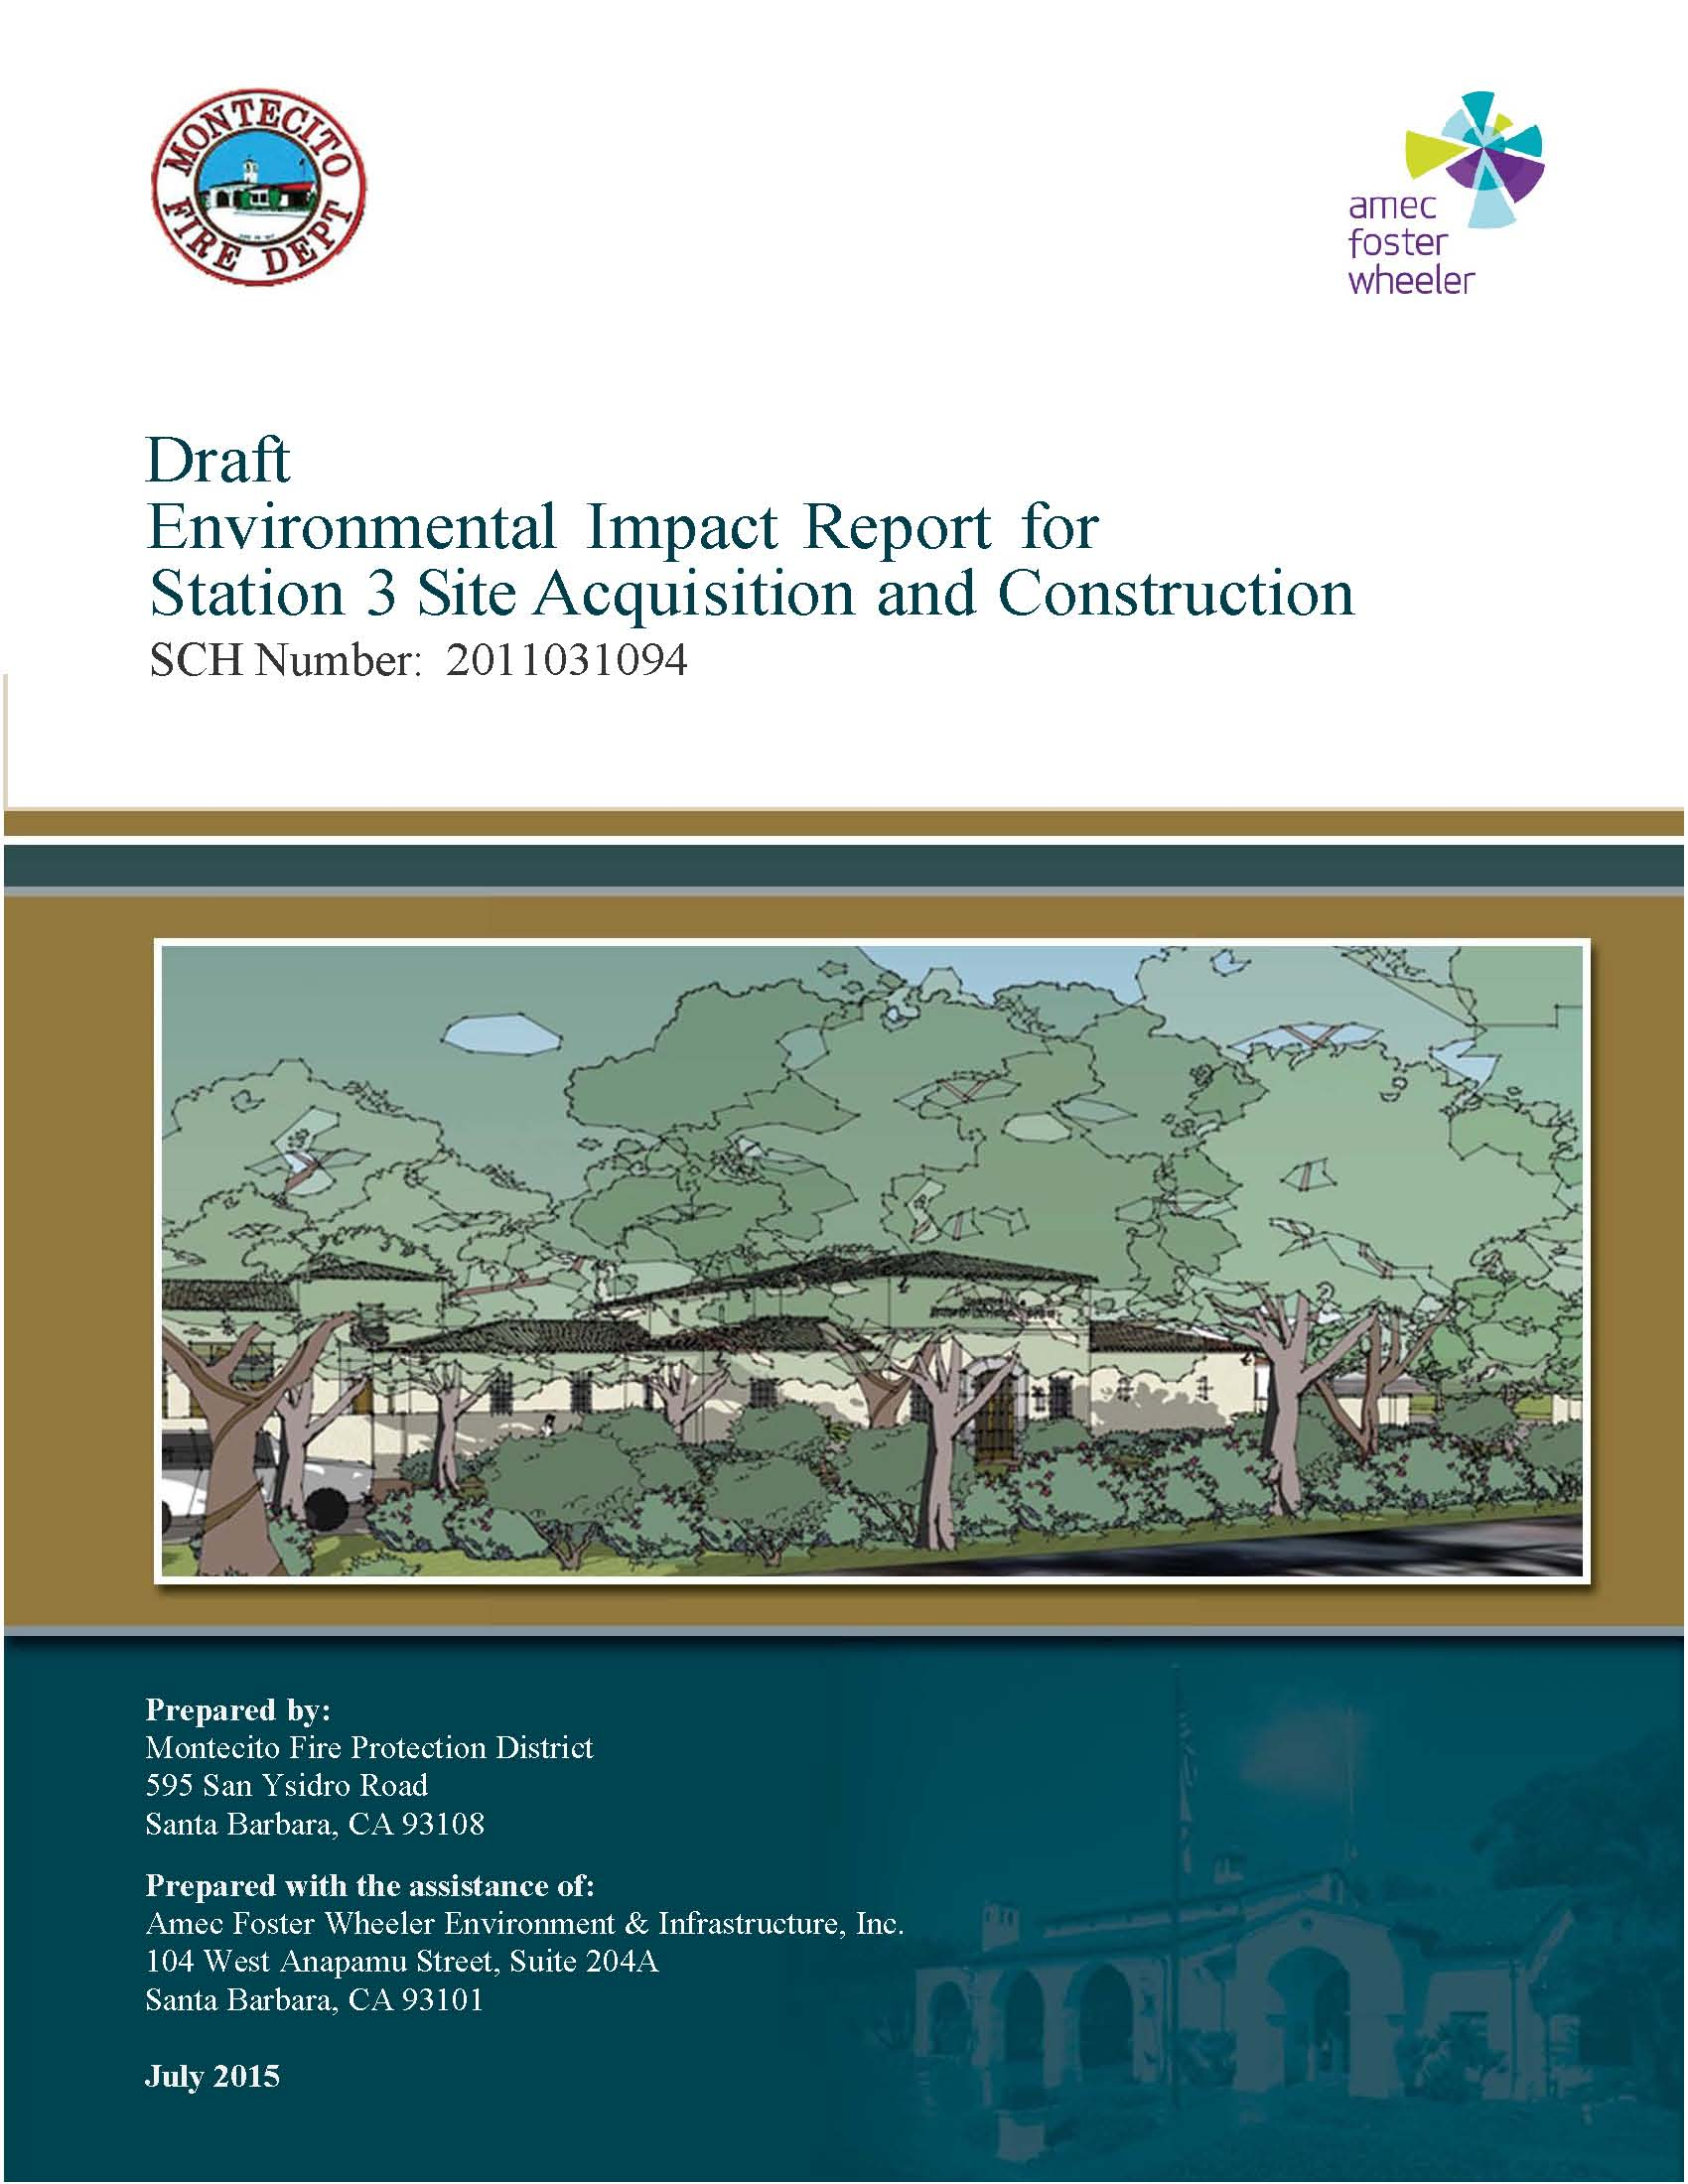 2015 Draft Environmental Impact Report for Station Three